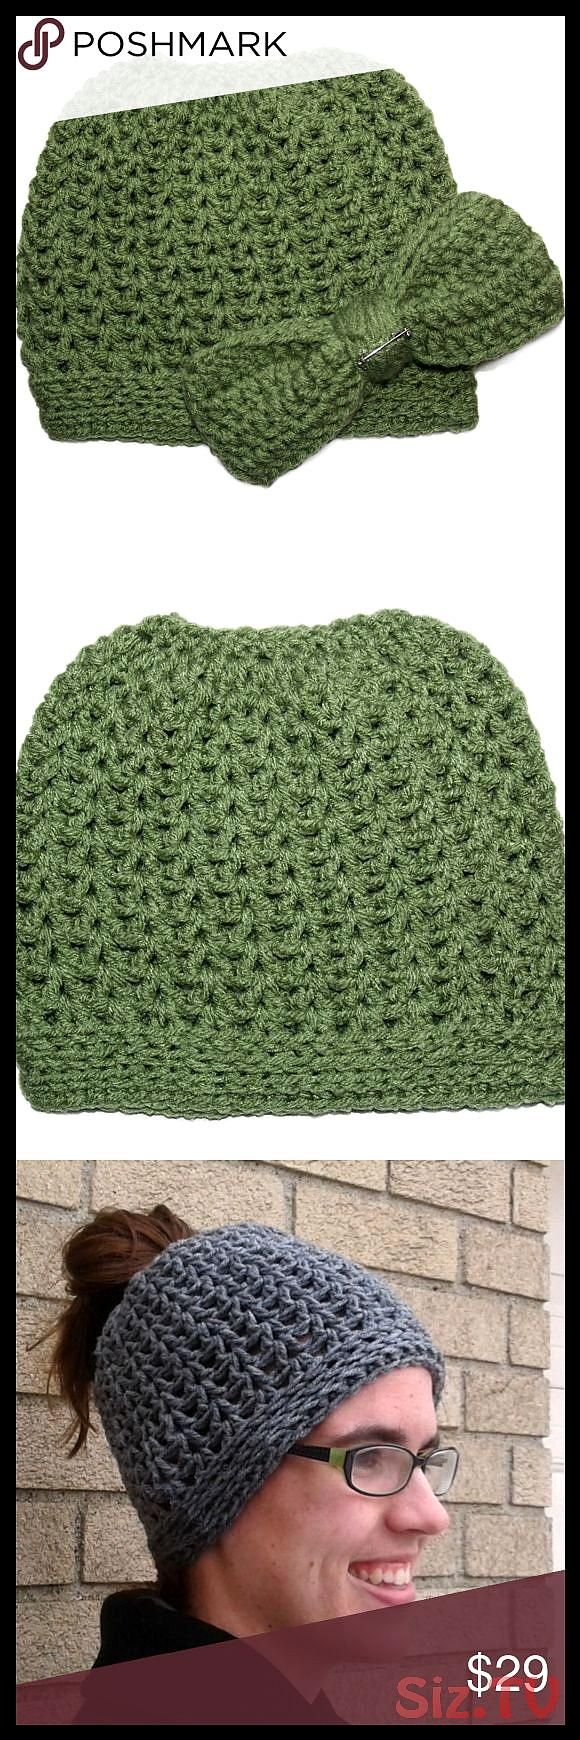 Green Messy Bun Hat w ClipOn Bow MADE TO ORDER A new and fun trend the Messy Bun Hat This cool design will keep your head warm while allowing yoGreen Messy Bun Hat w Clip...